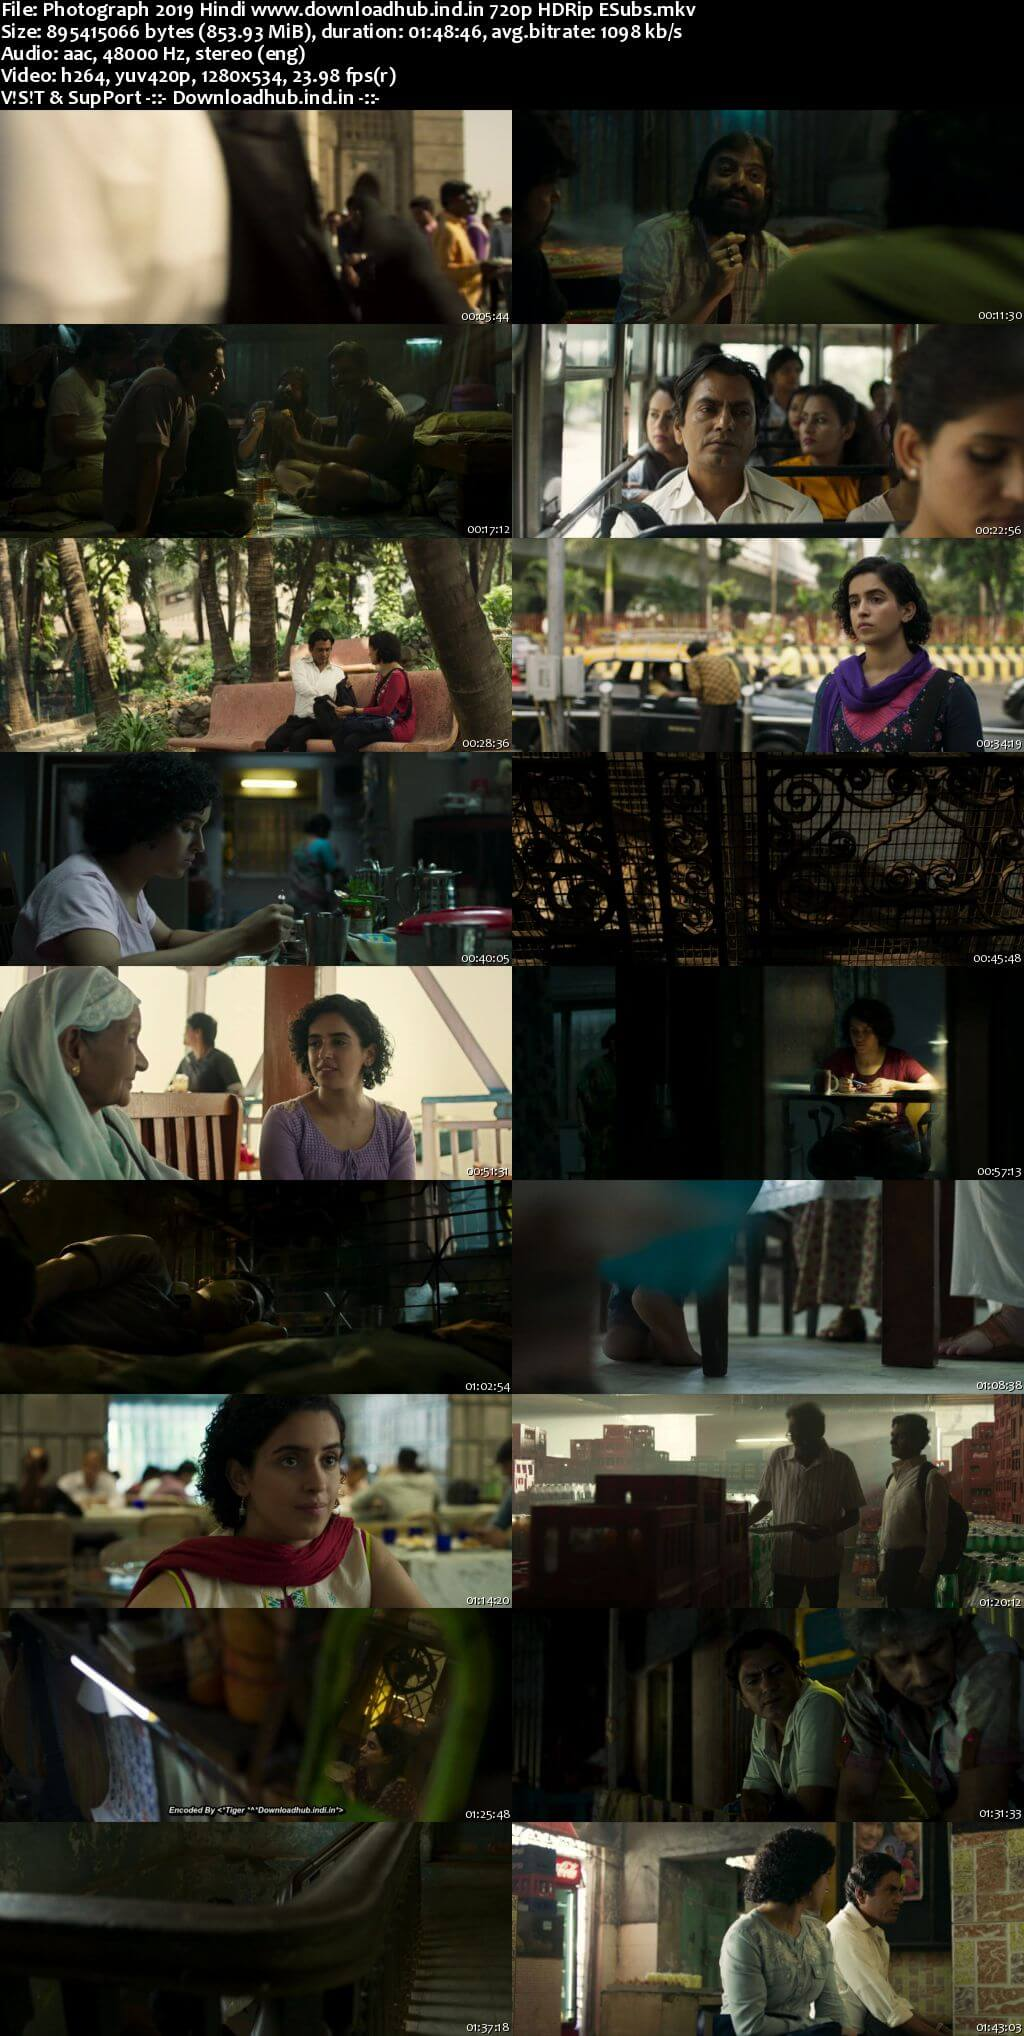 Photograph 2019 Hindi 720p HDRip ESubs